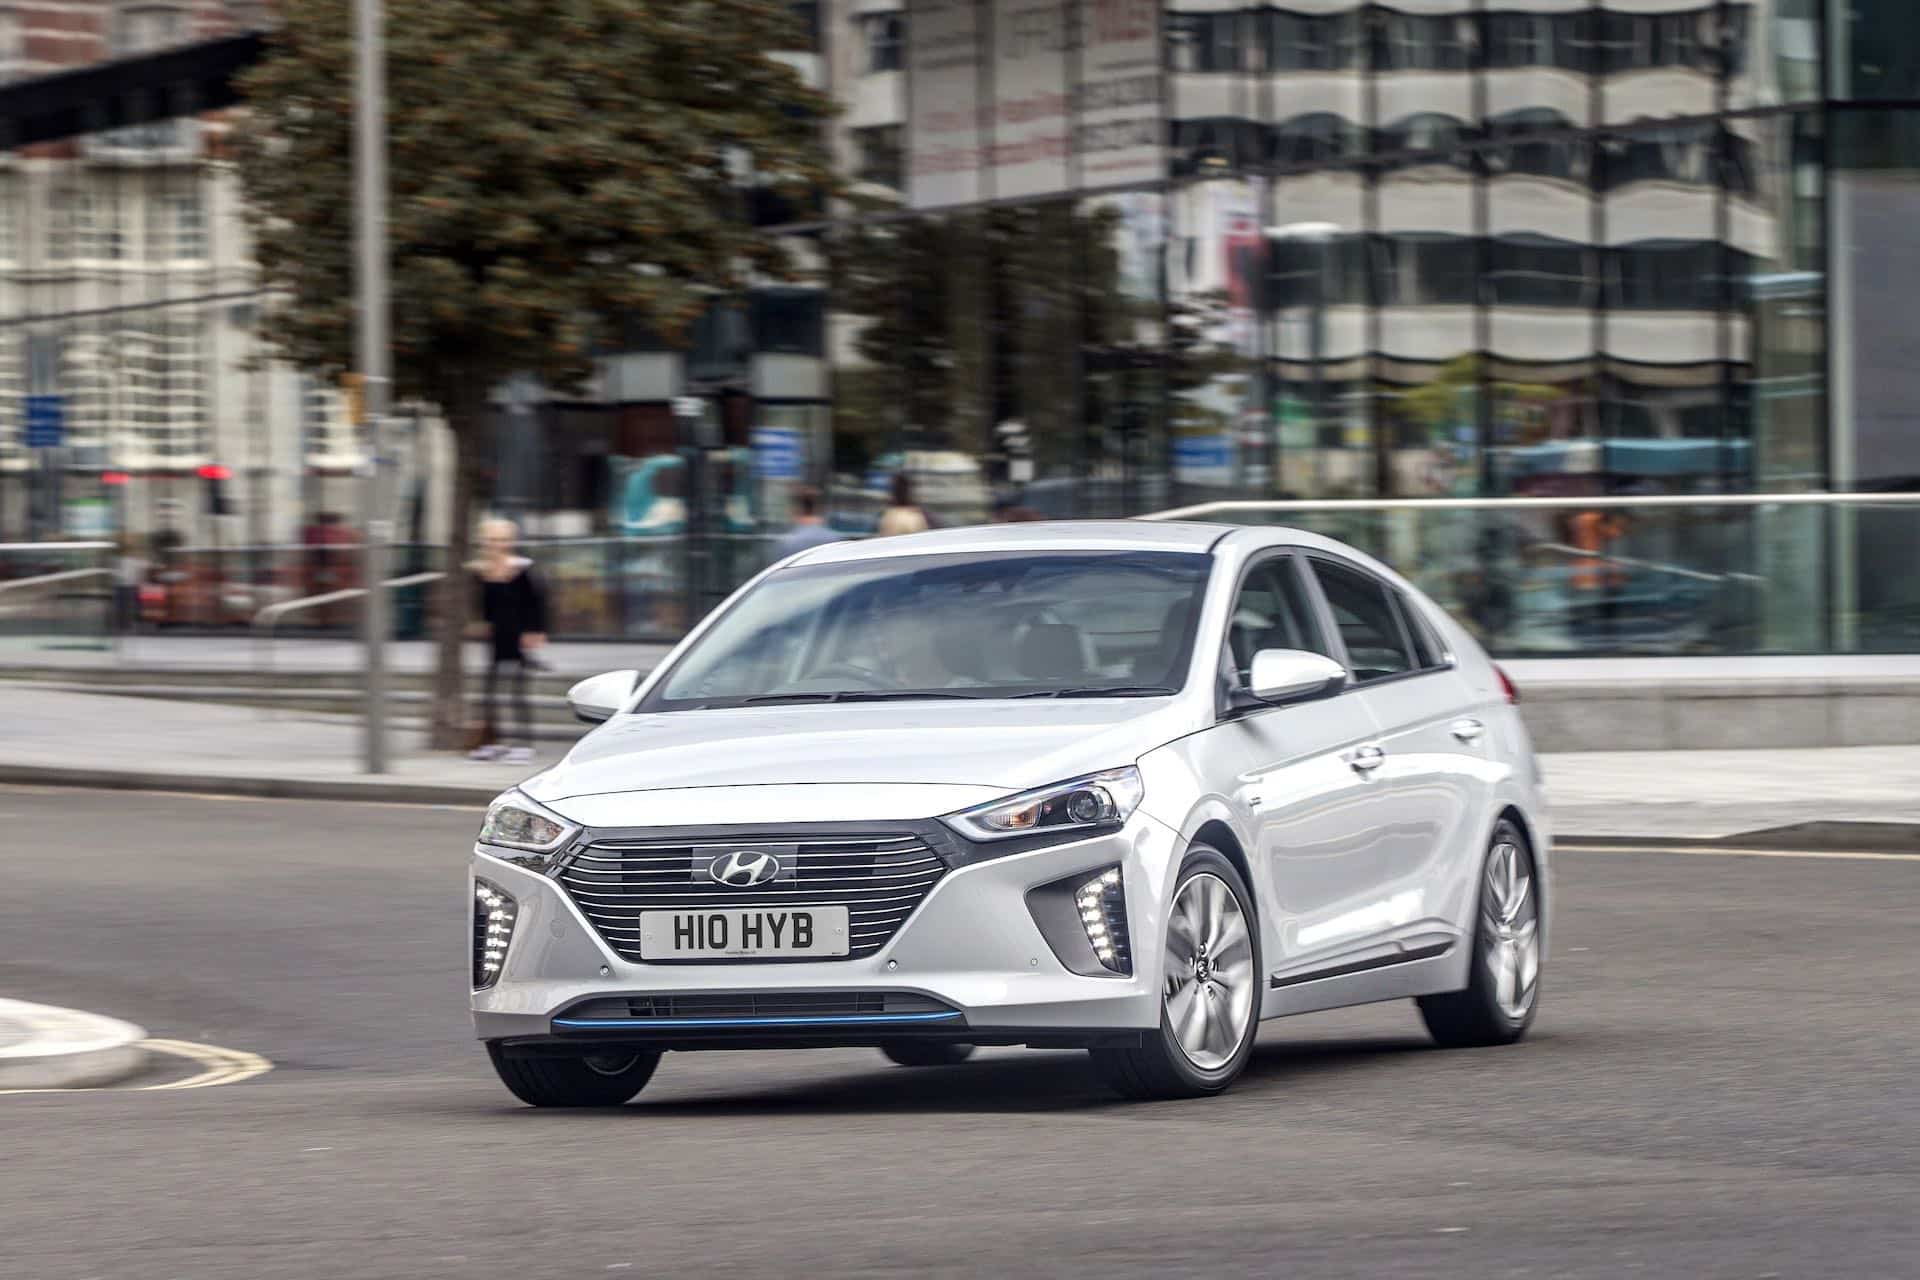 The Hyundai Ioniq is slightly larger and less radical in appearance than the Toyota Prius